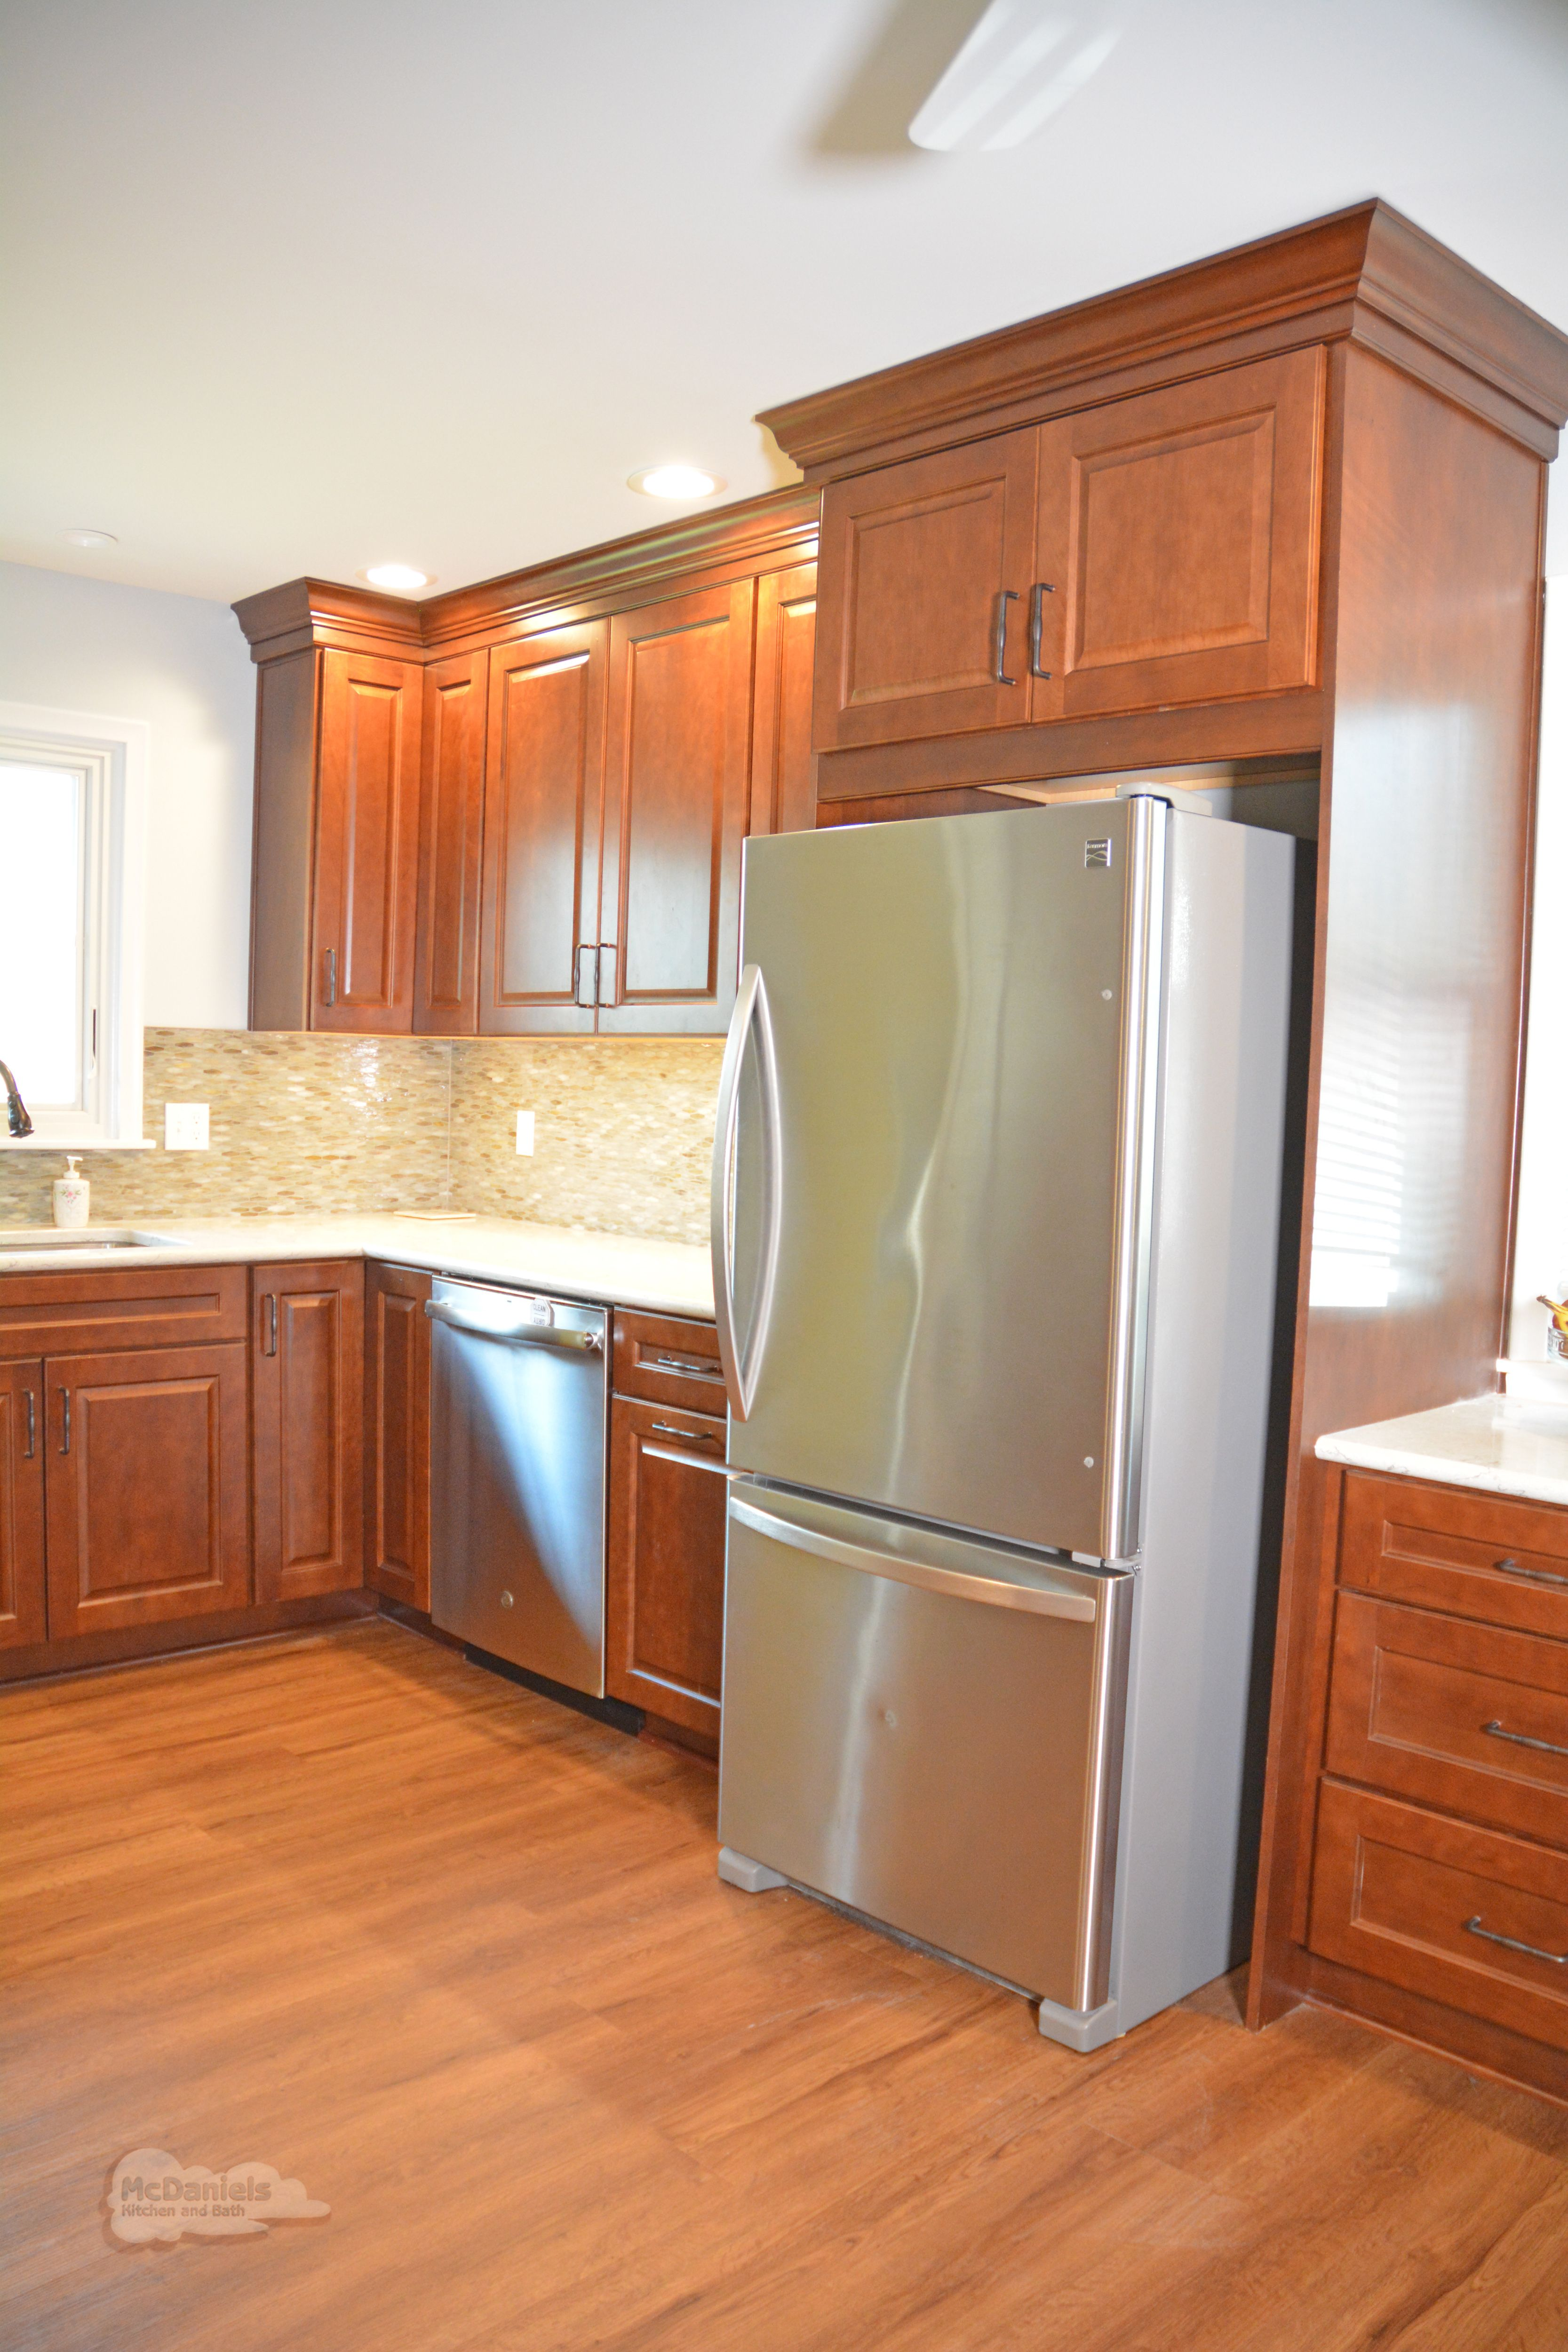 This Lansing Mi Kitchen Design Features Diamond Vibe By Masterbrand Kitchen Cabinets In A Warm Woo Kitchen And Bath Remodeling Kitchen Design Kitchen Cabinets